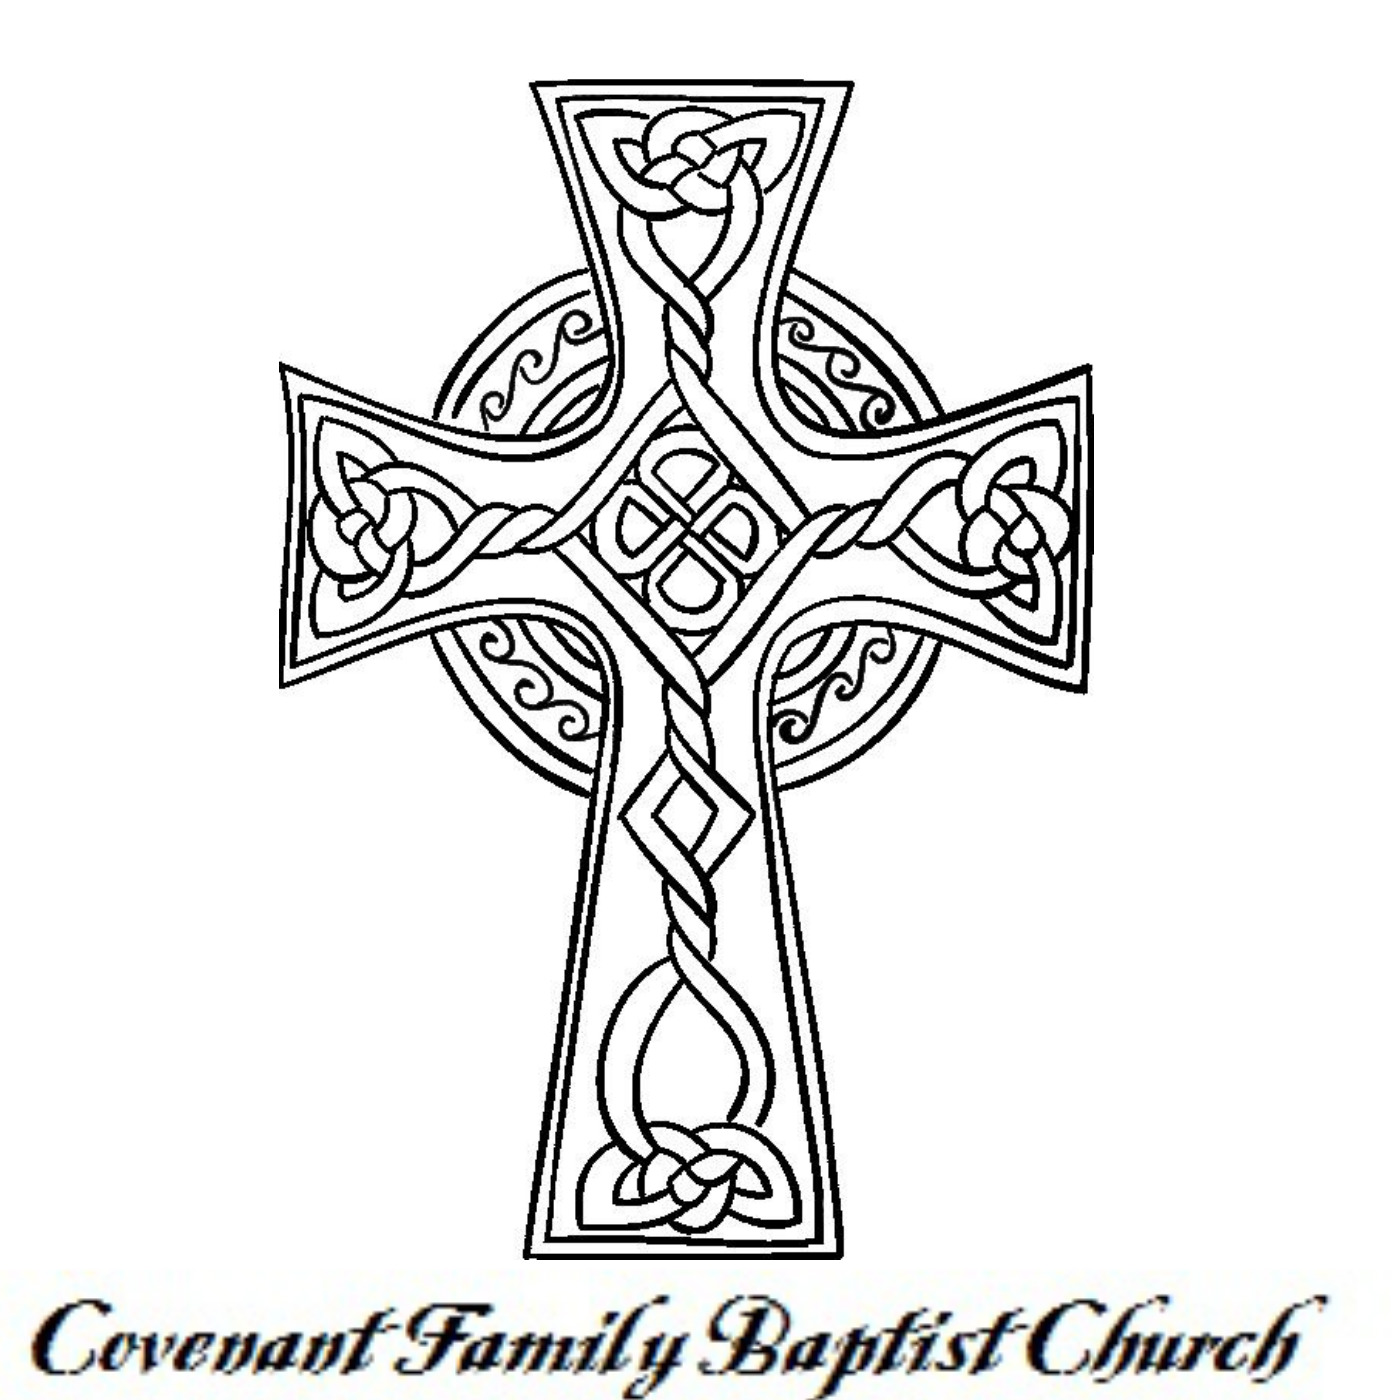 Covenant Family Baptist Church